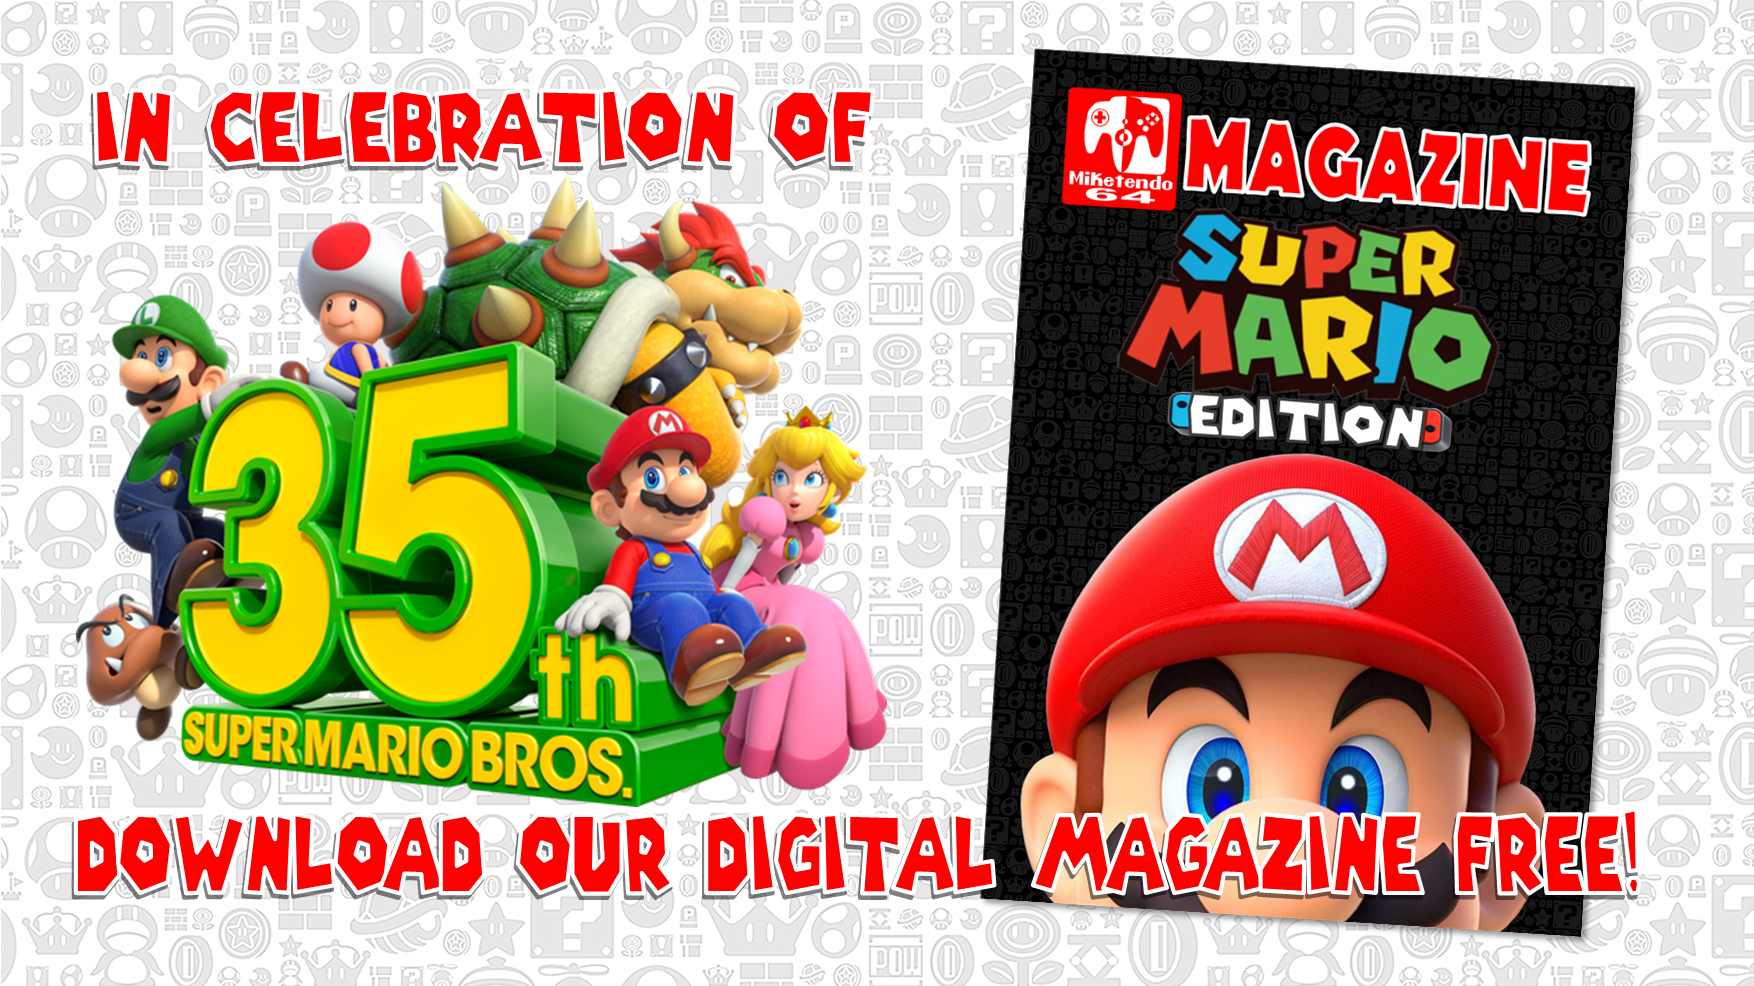 M64 Magazine - Super Mario Edition